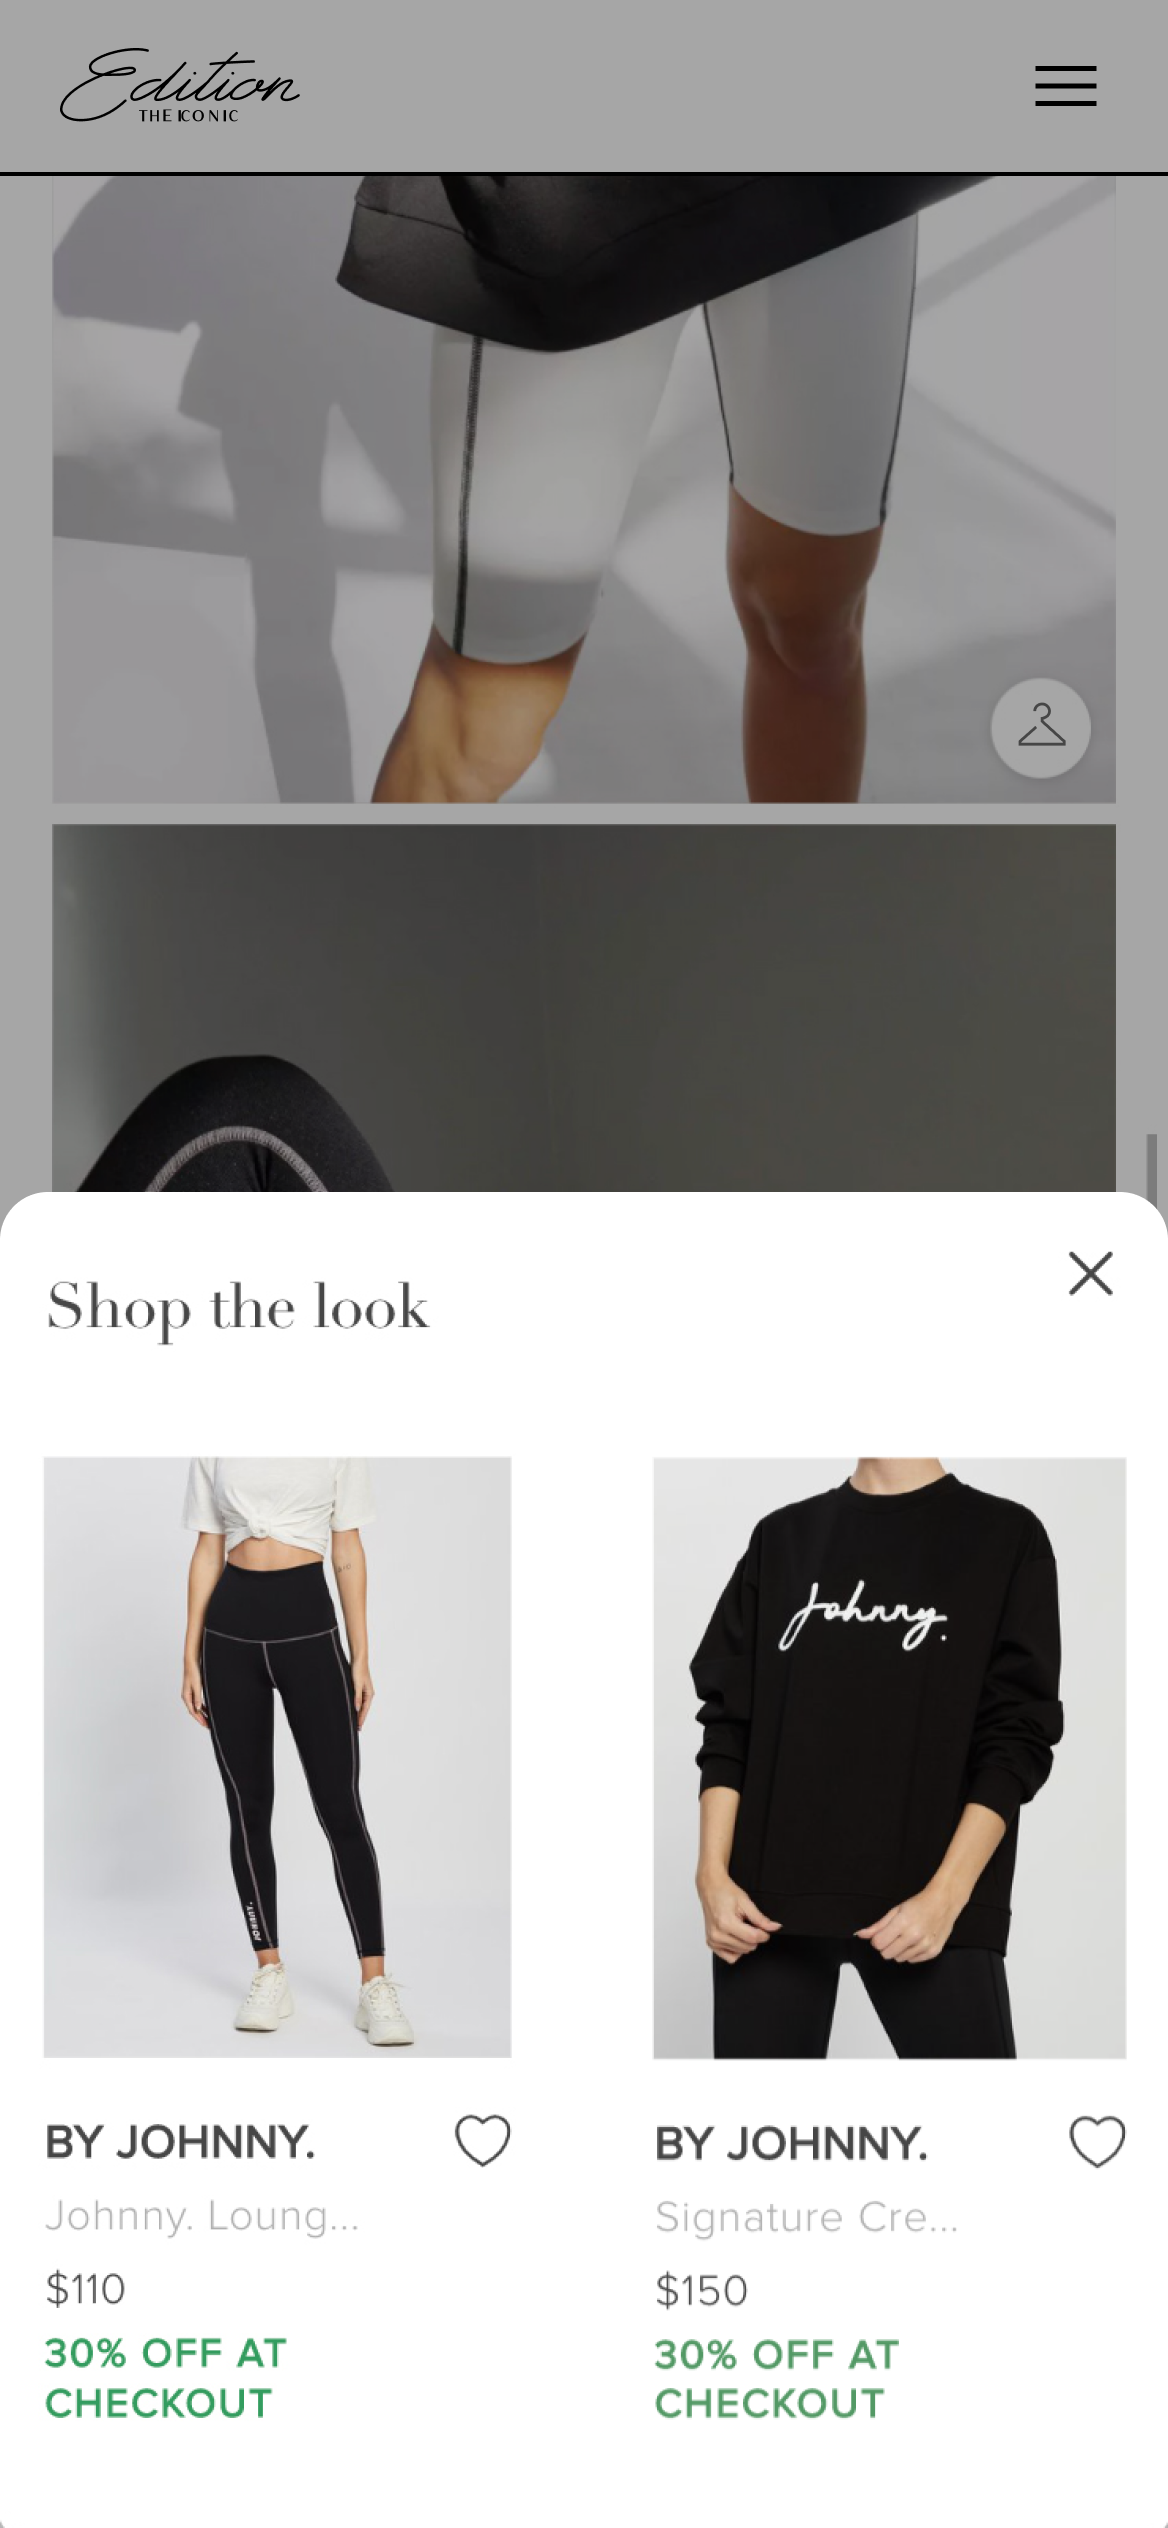 Edition by THE ICONIC 'shop the look' ecommerce tray - allowing users to purchase directly from an editorial image